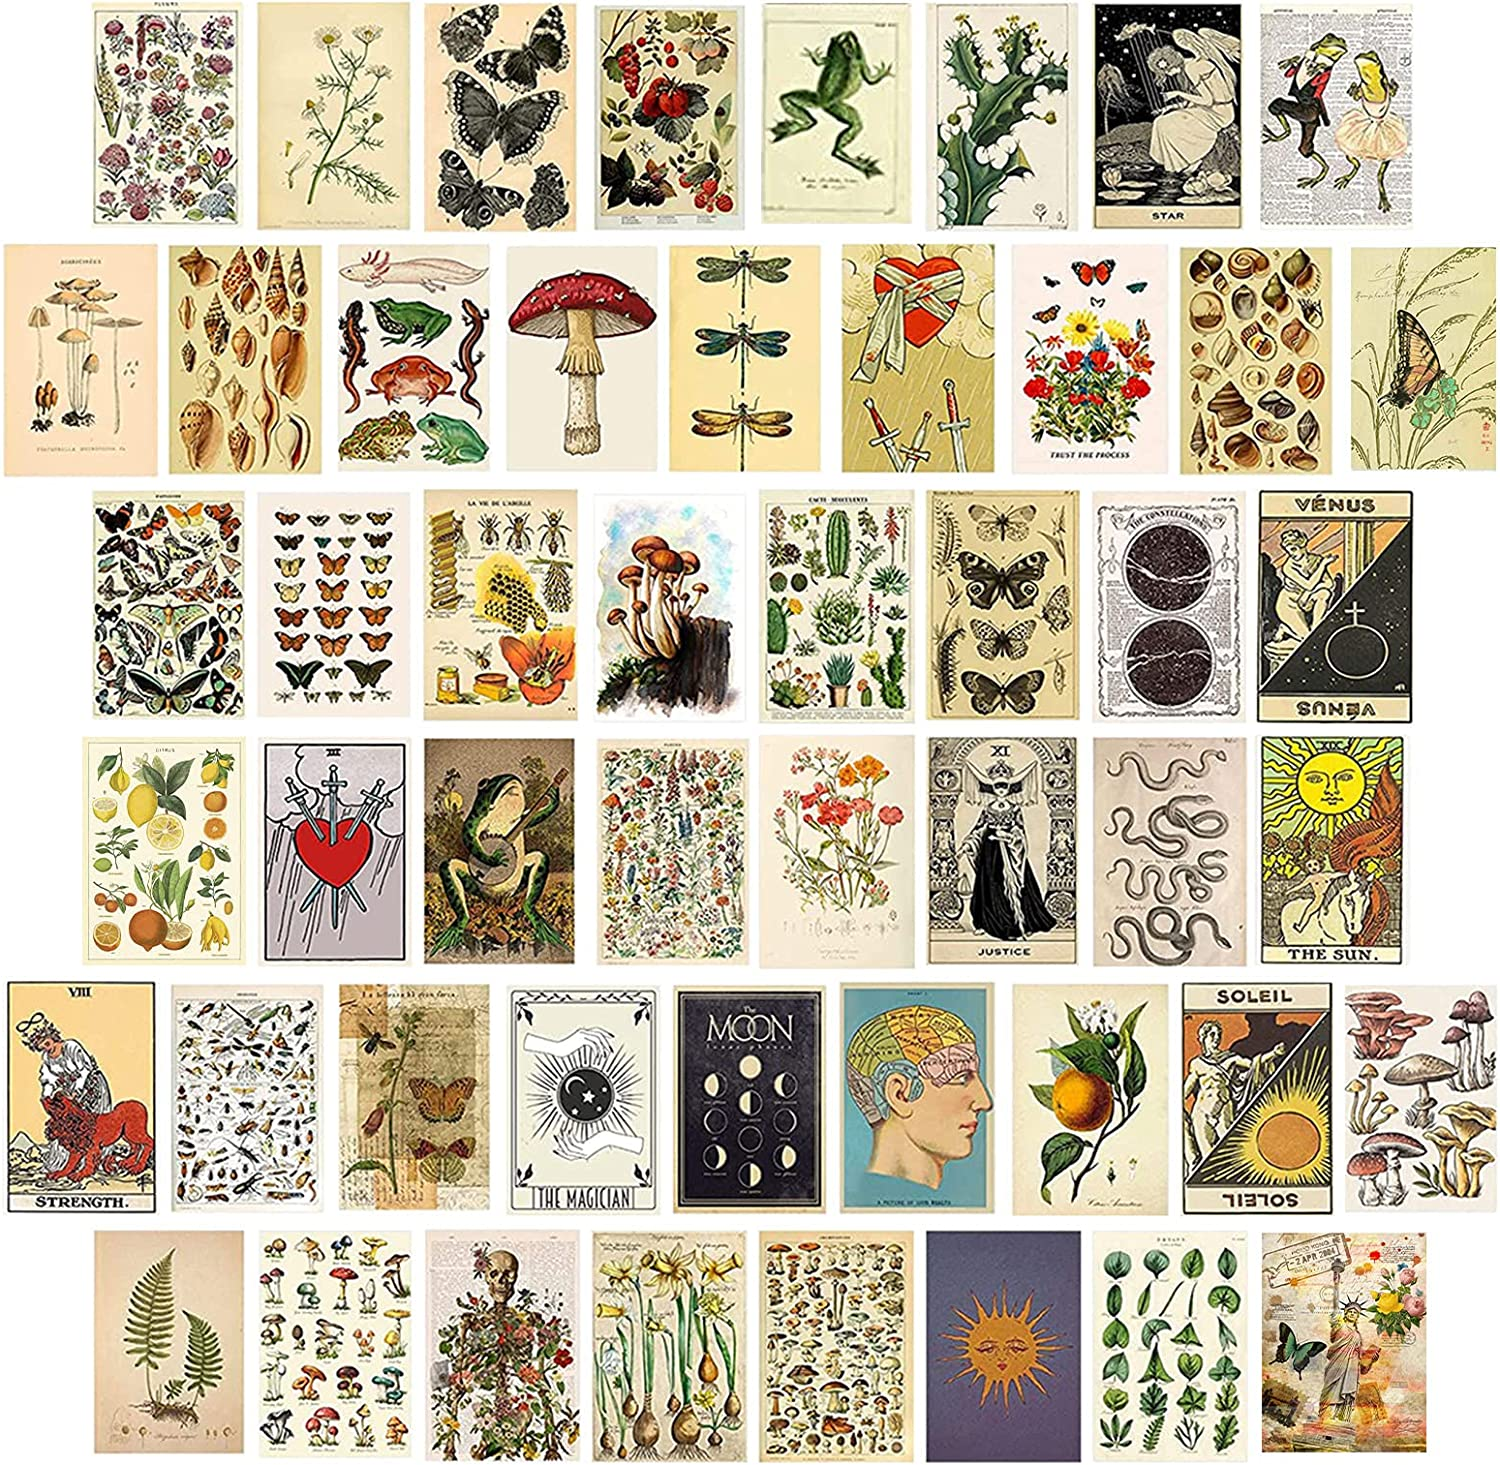 50PCS Wall Collage Kit Vintage Aesthetic Art Print - Trendy Pictures for Teens Girl Boy Dorm Decor, Botanical Photo Collection, Small Posters for Room Decoration